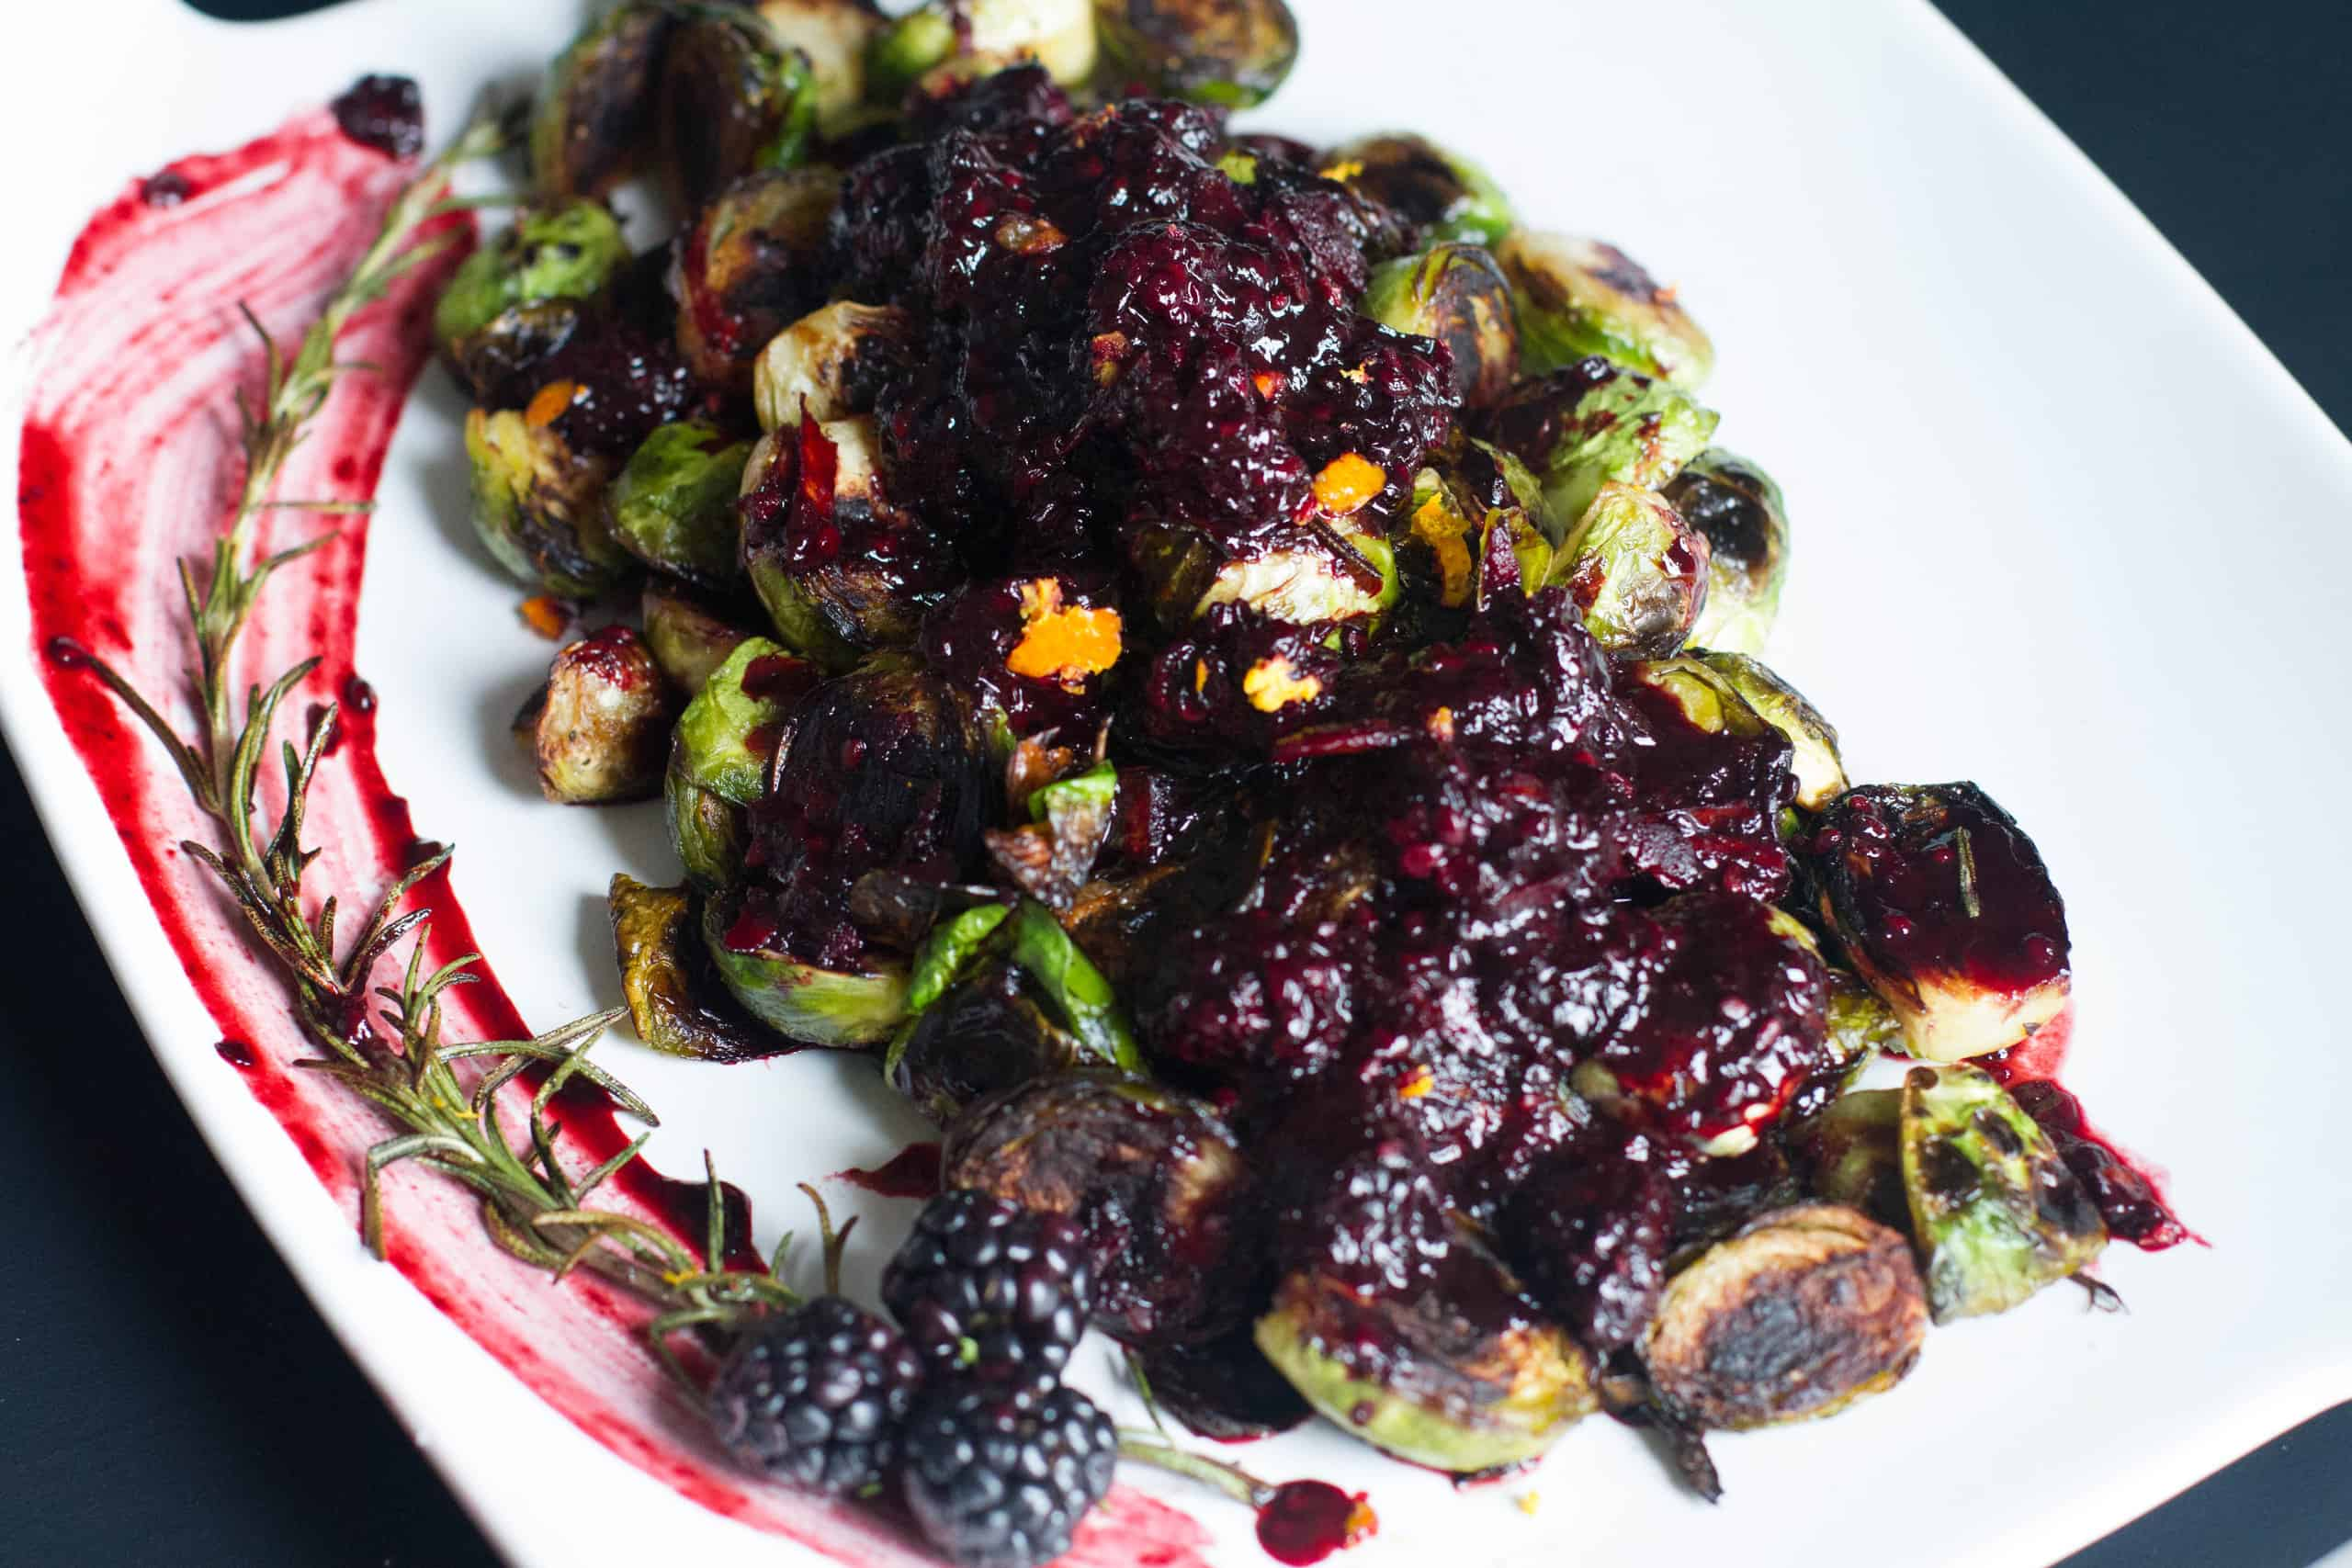 Crispy Brussel Sprouts with Blackberry Reduction